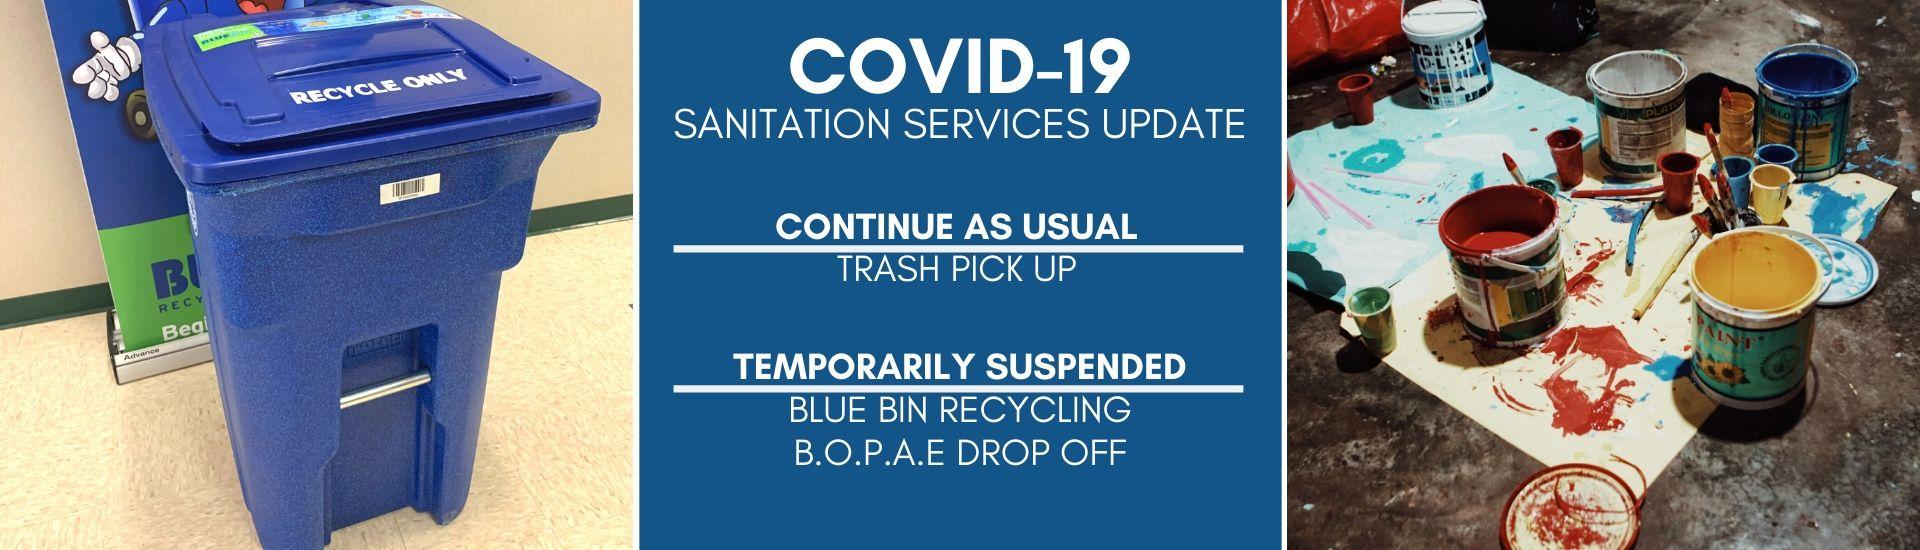 COVID-19 sanitation services update